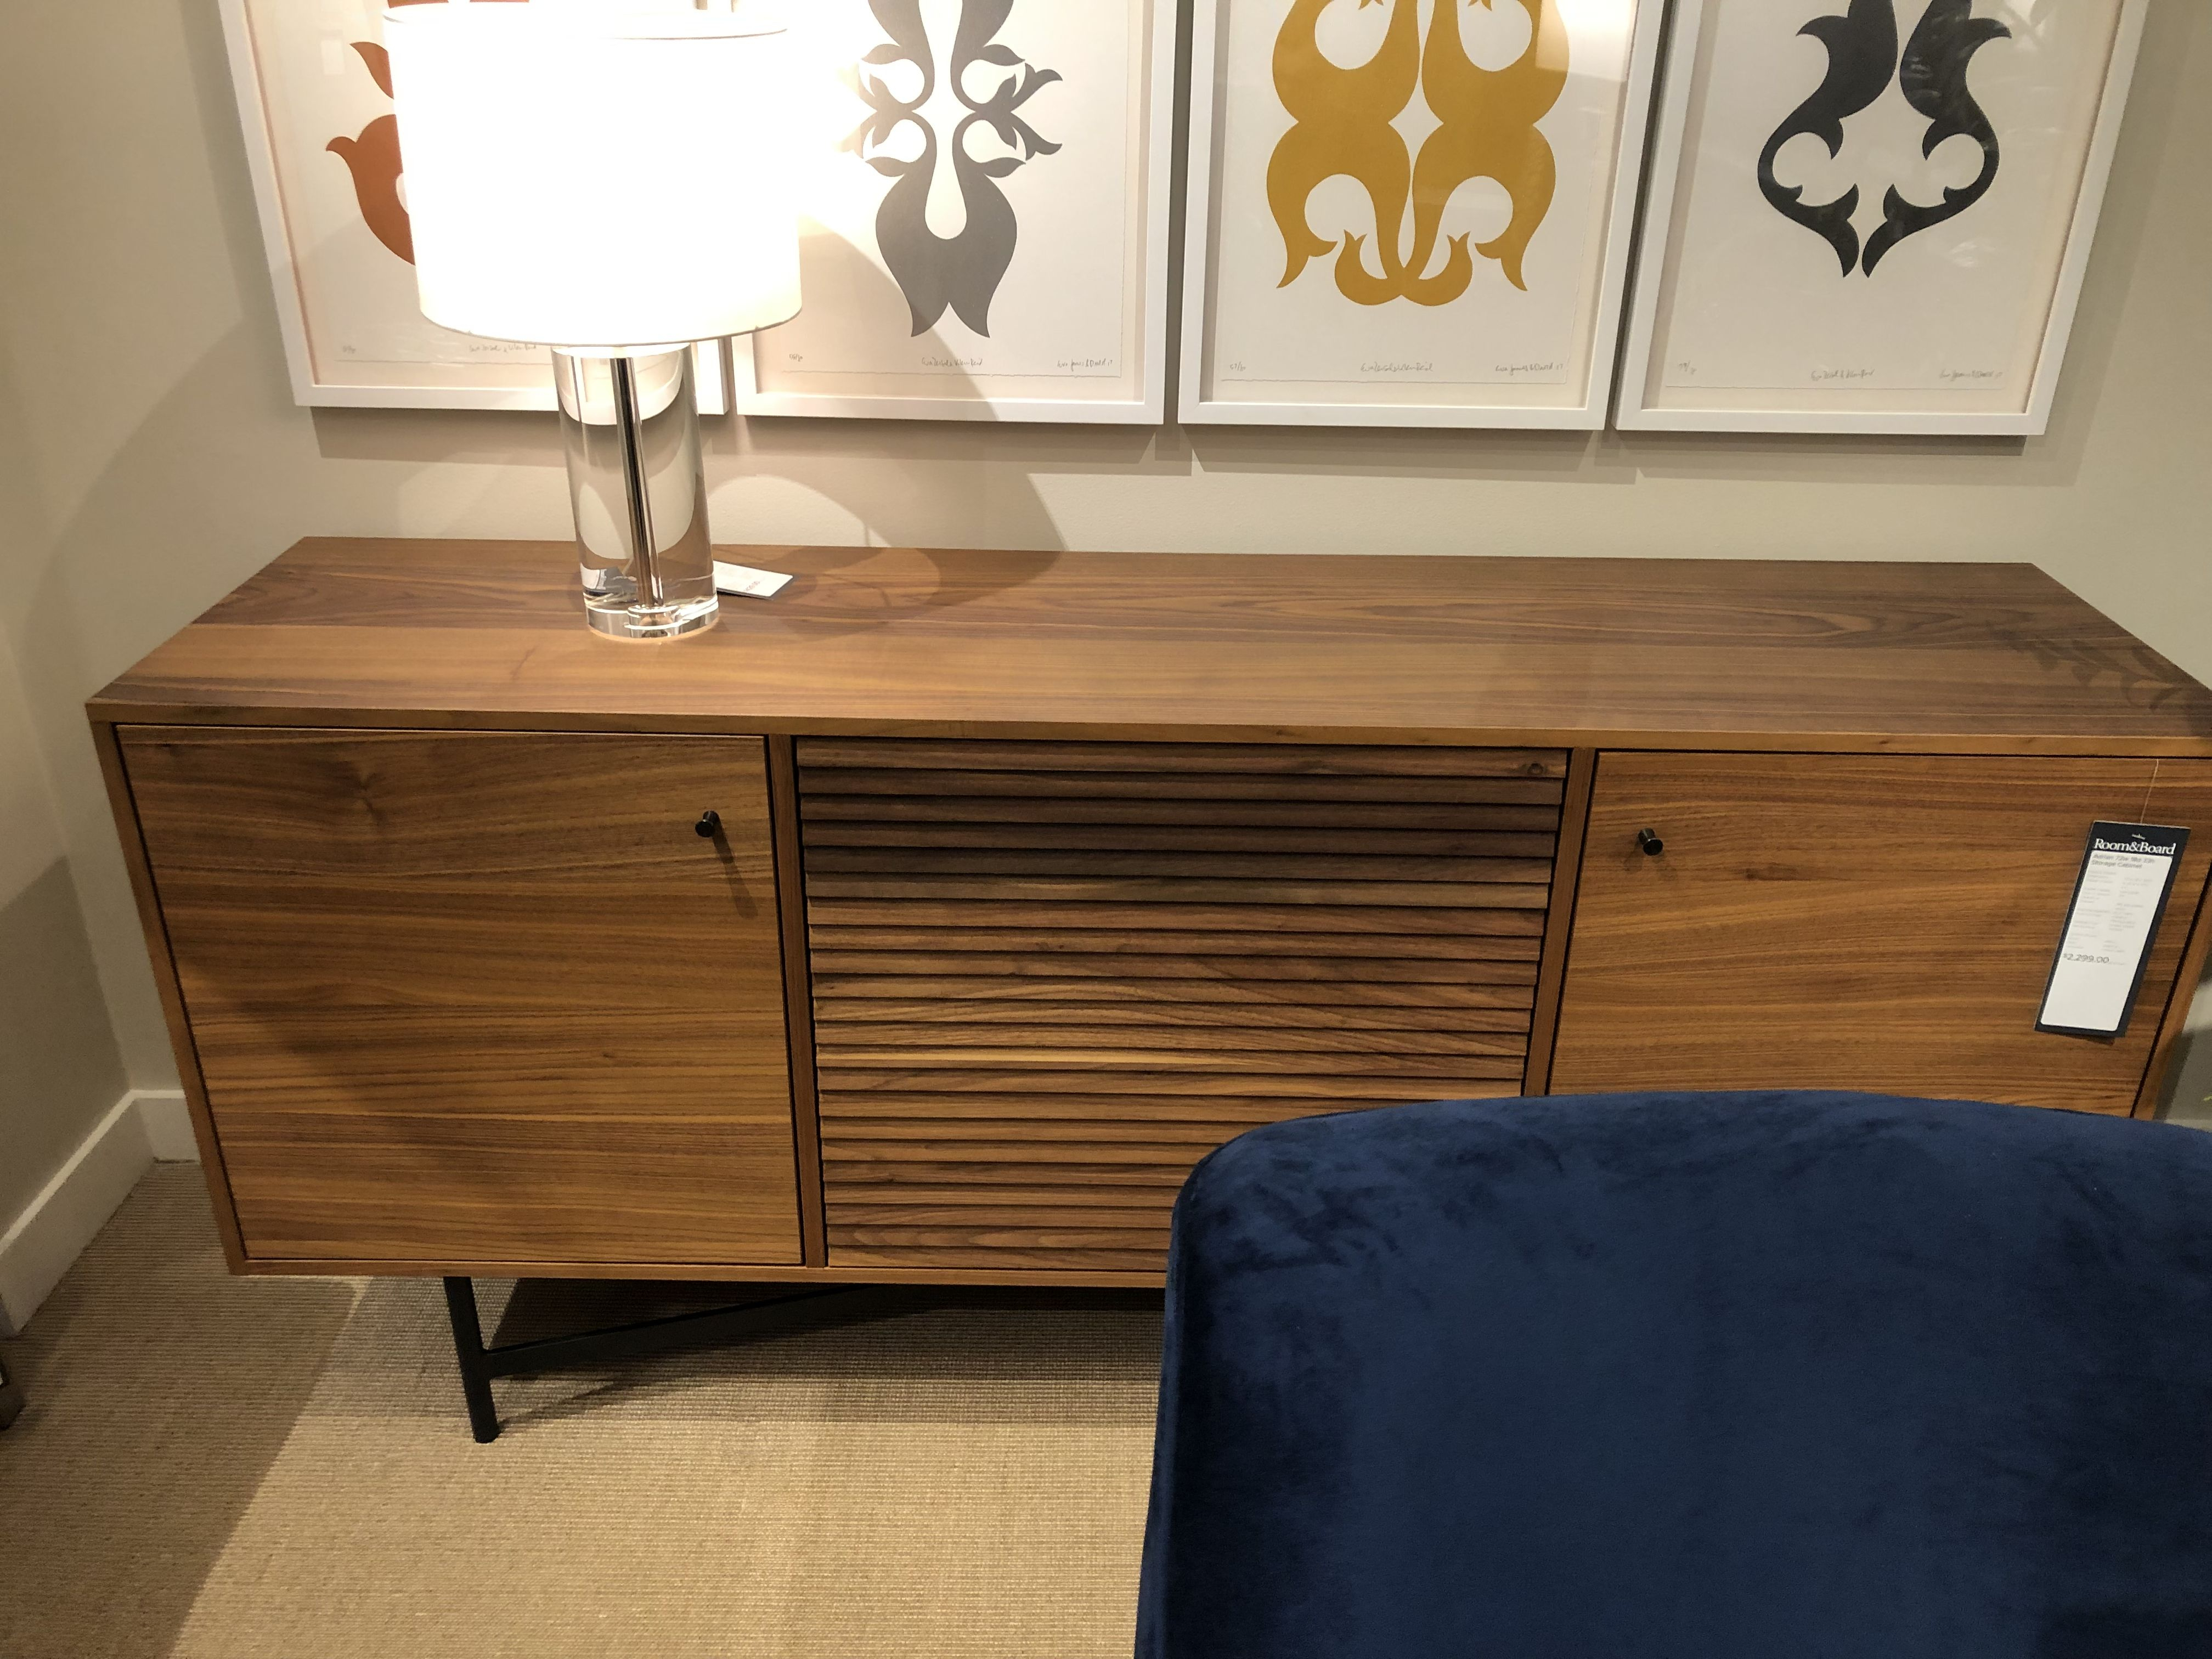 Pinjinnyn Jacob On Living & Dining Rooms In 2019 within Rosson Sideboards (Image 16 of 30)